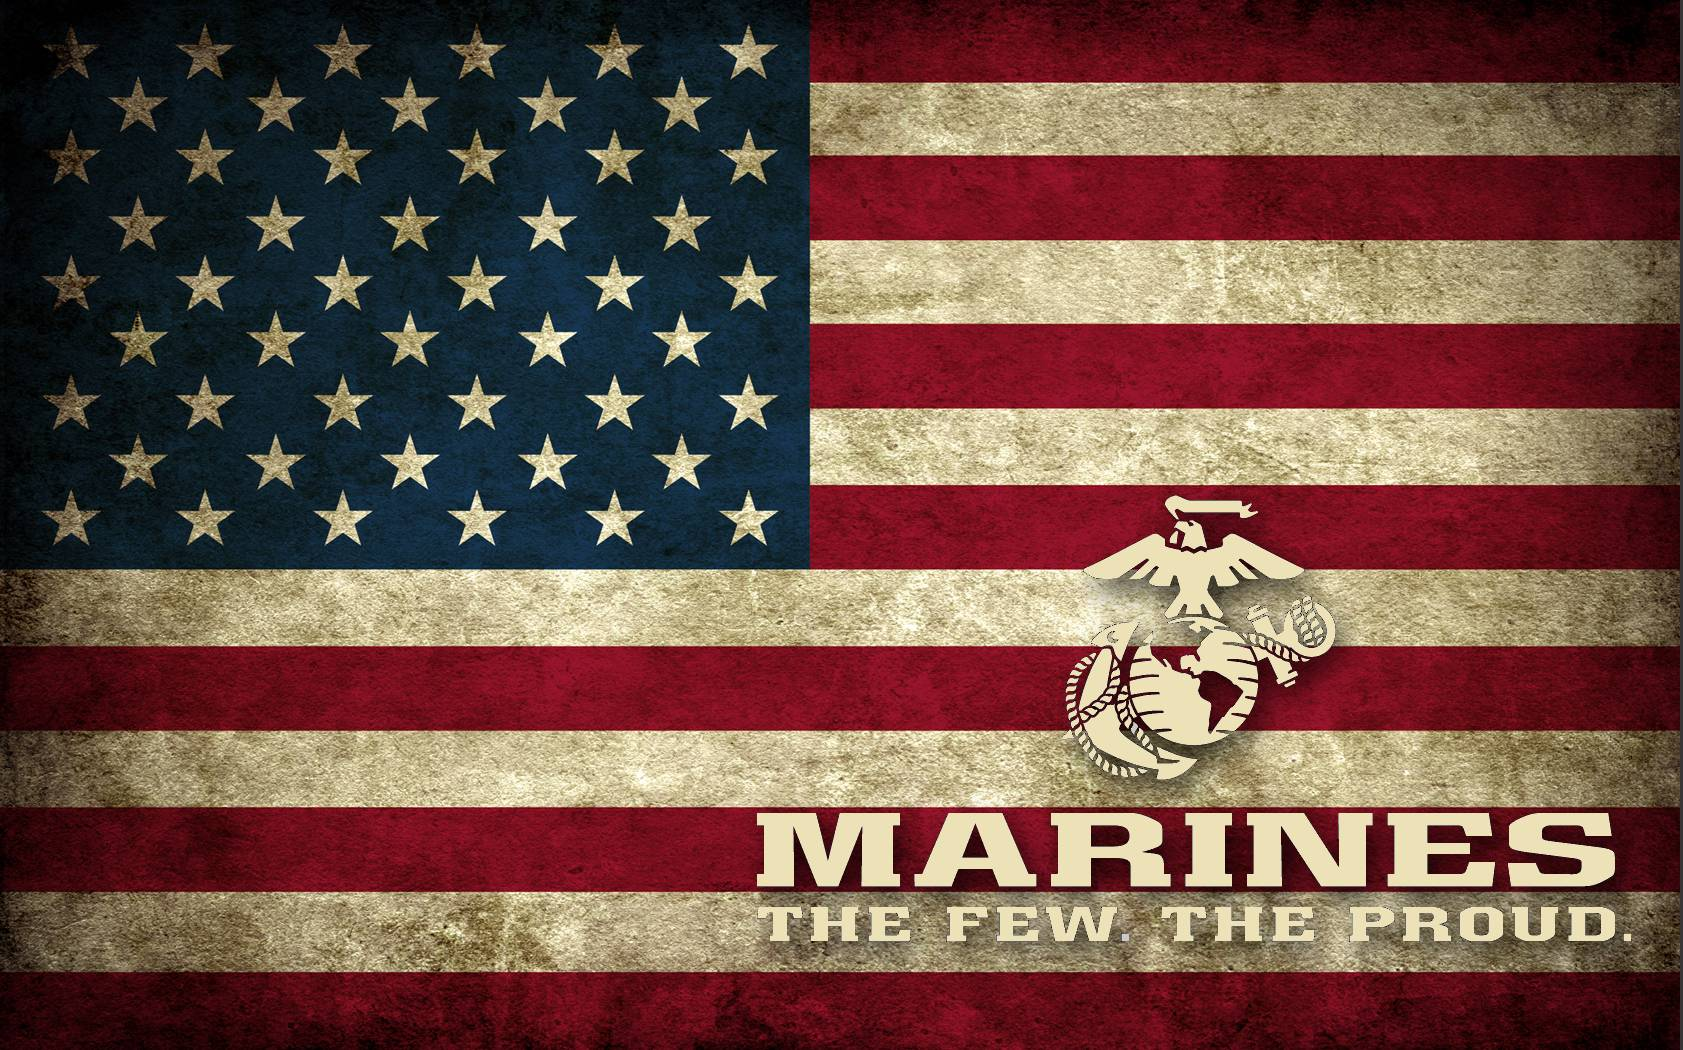 Page 1164 | Marine corps wallpaper hd backround for dekstop ...